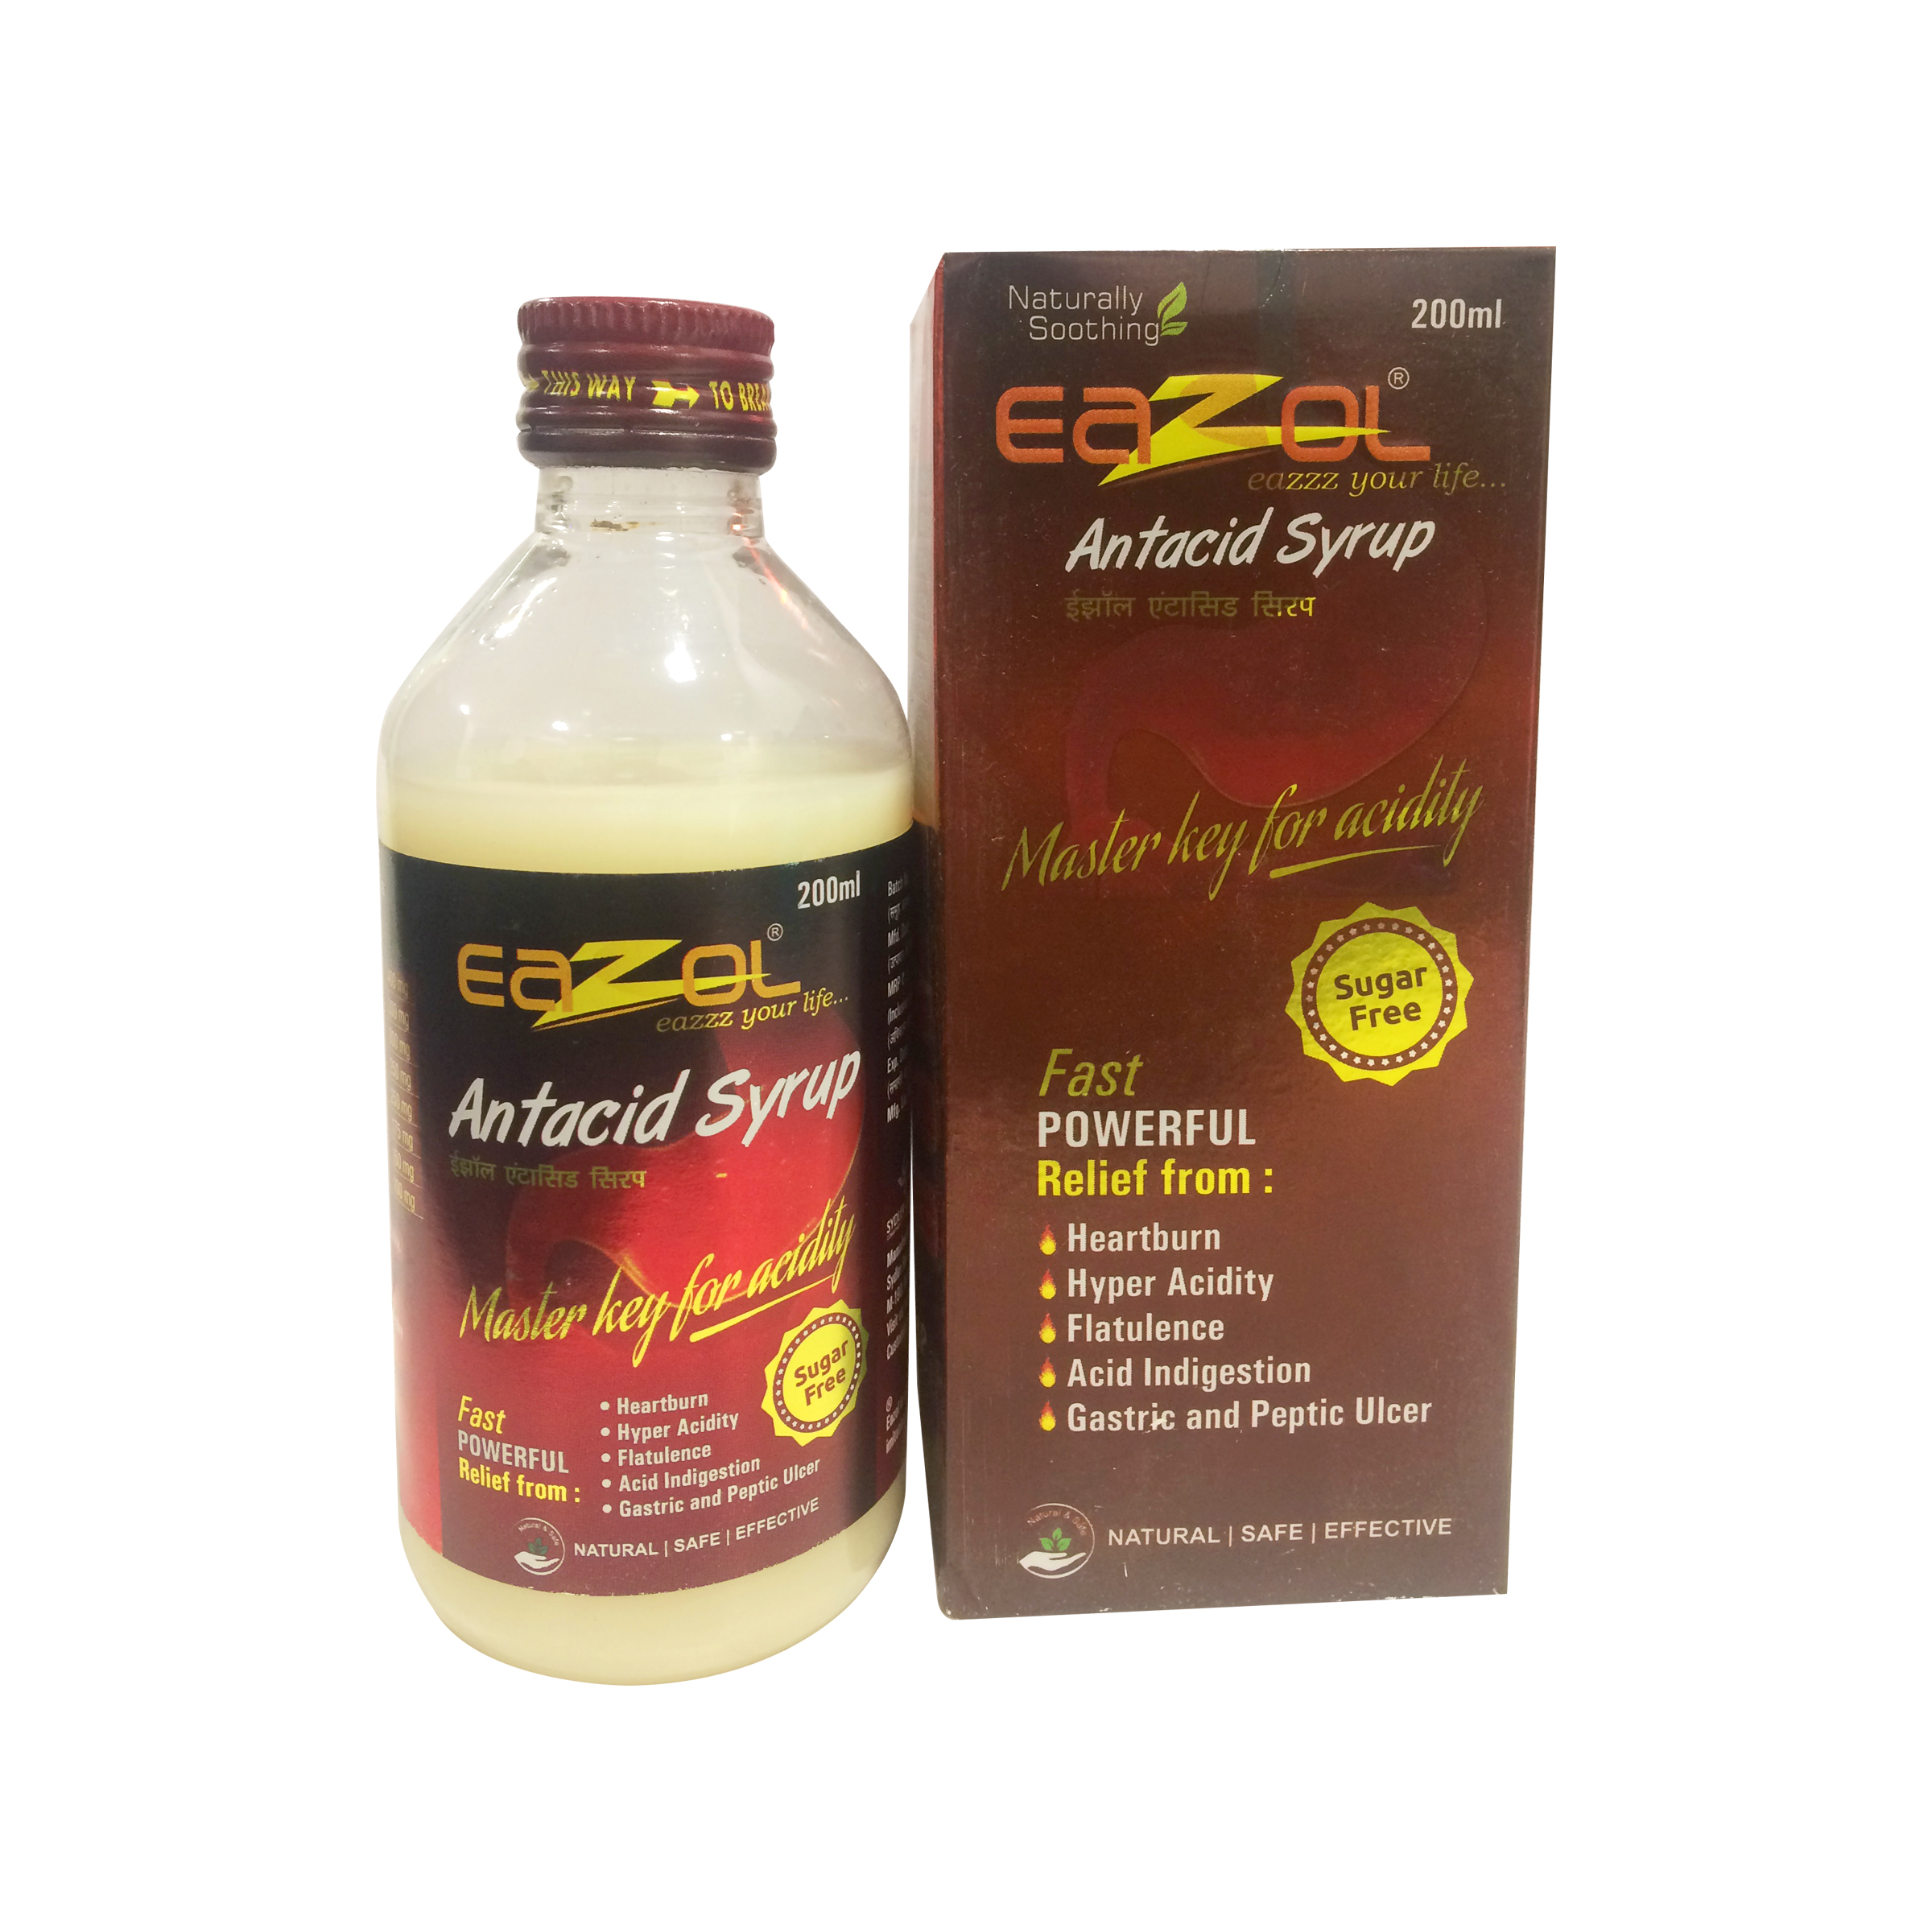 Eazol Antacid Syrup Relief From Heartburn Acidity Ulcer Home